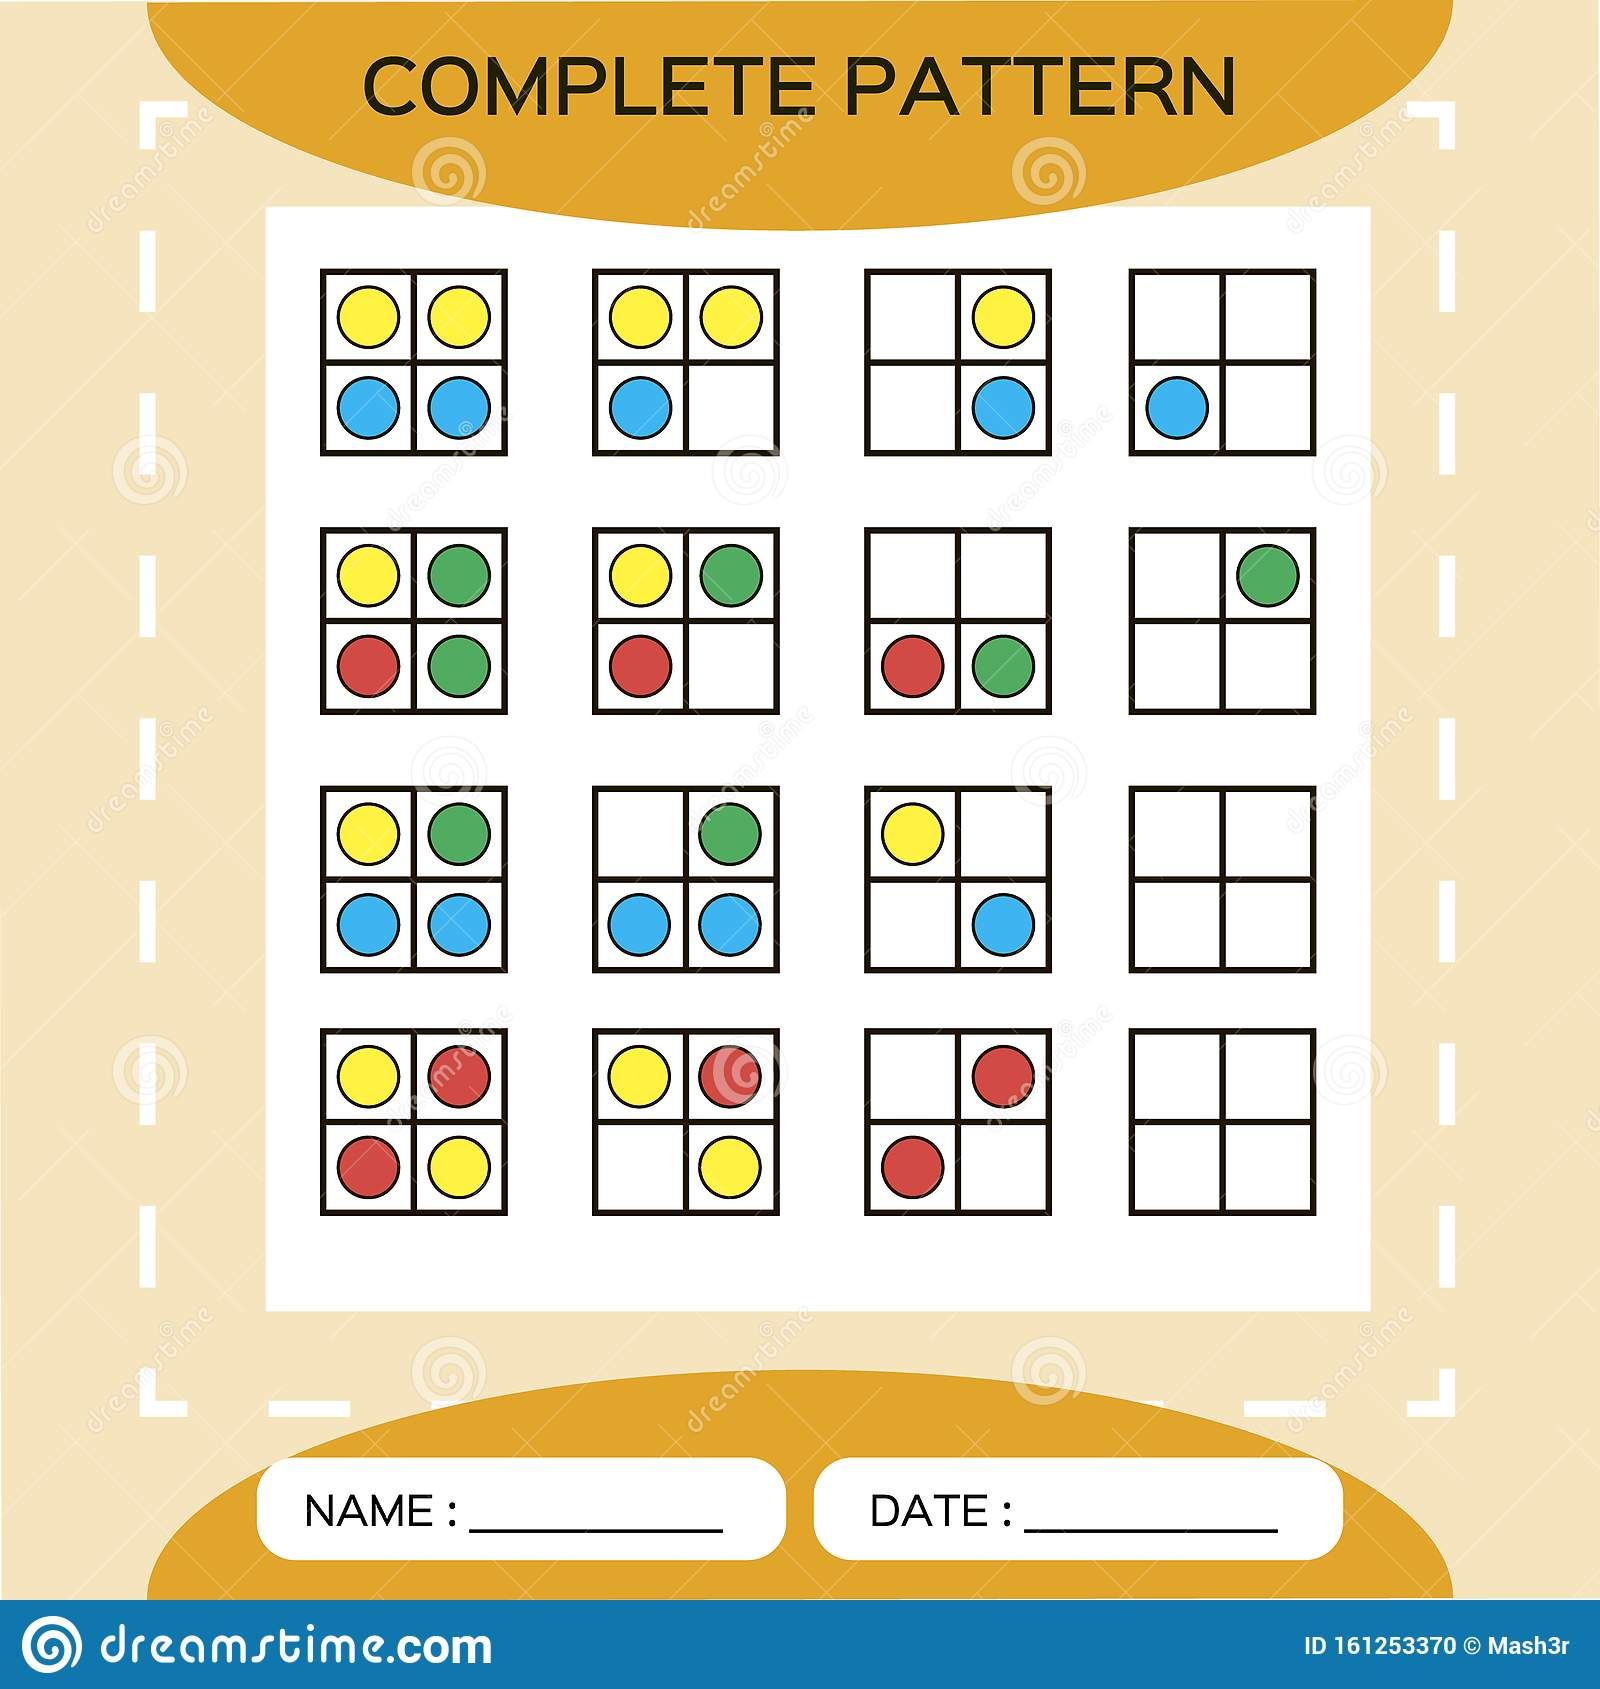 Repeat Pattern Square Grid 2x2 With Colorfull Circles